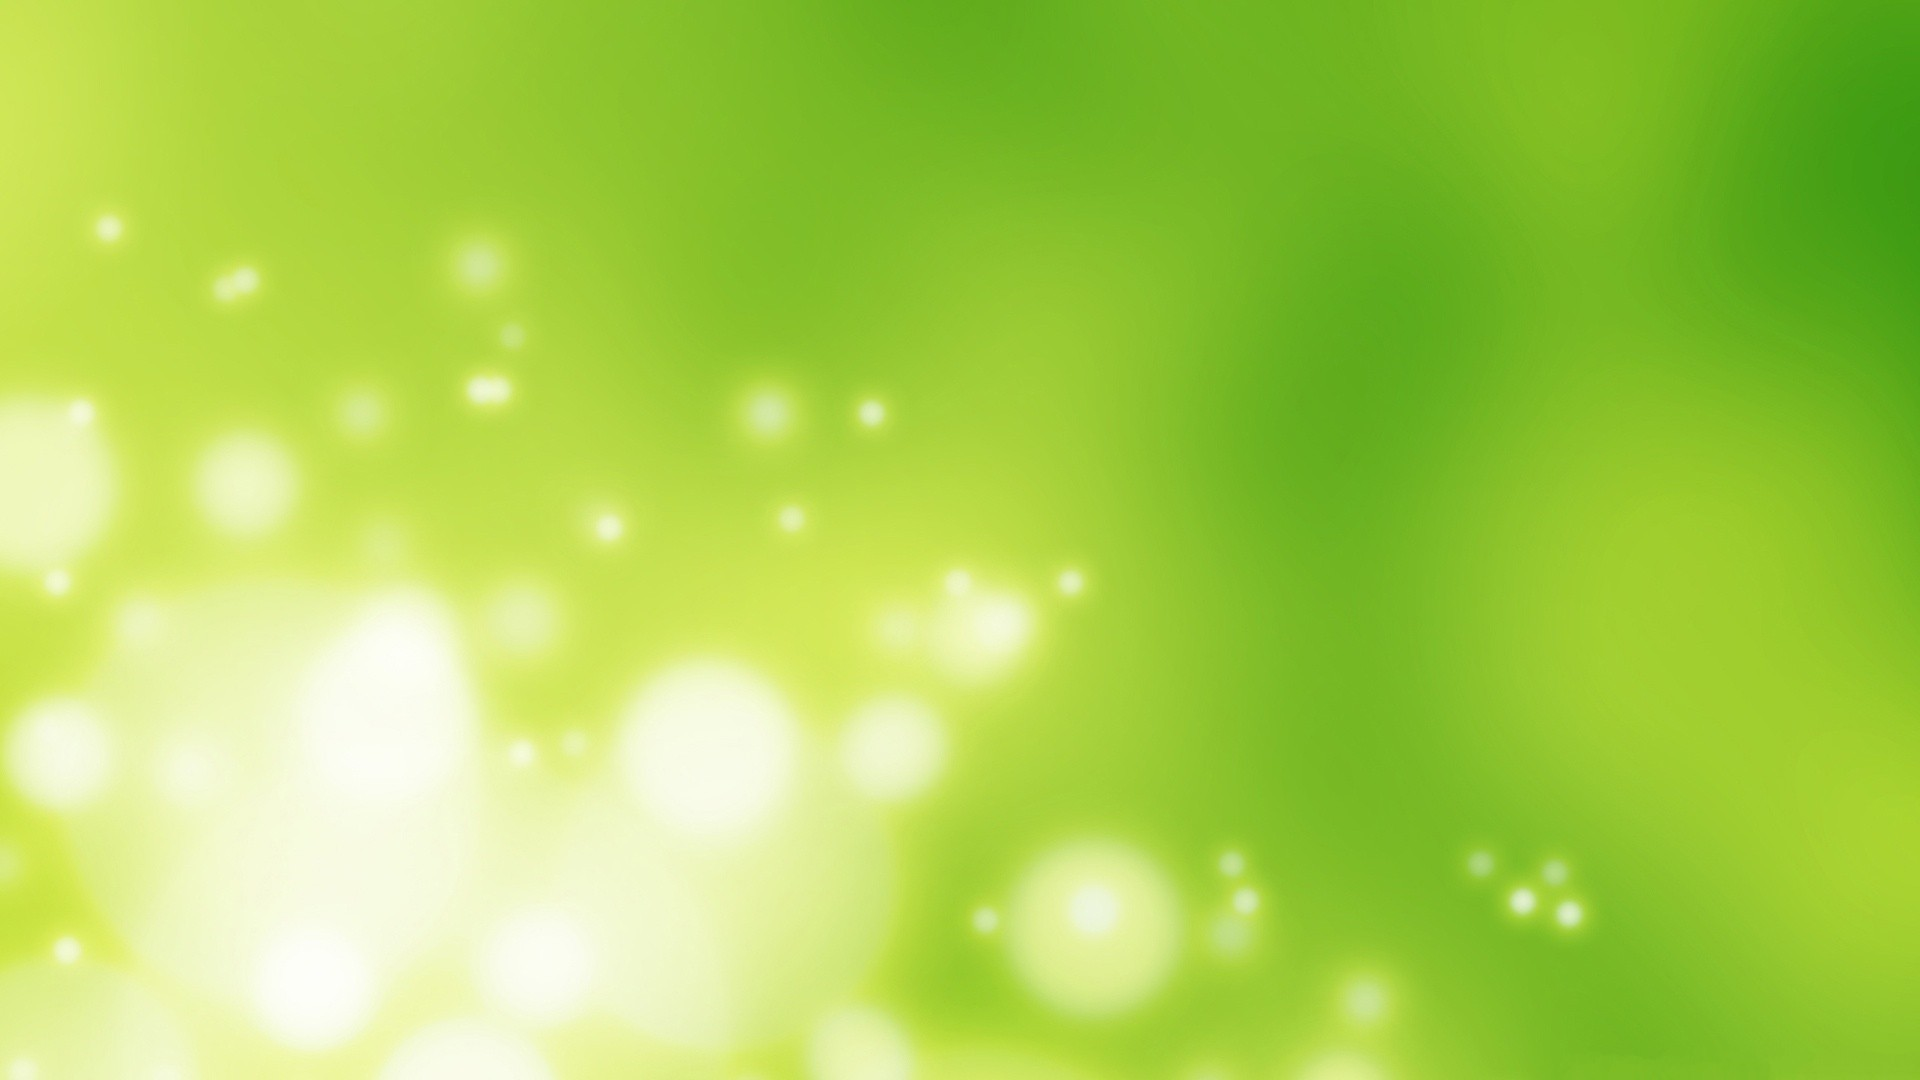 Lime Green wallpaper photo hd